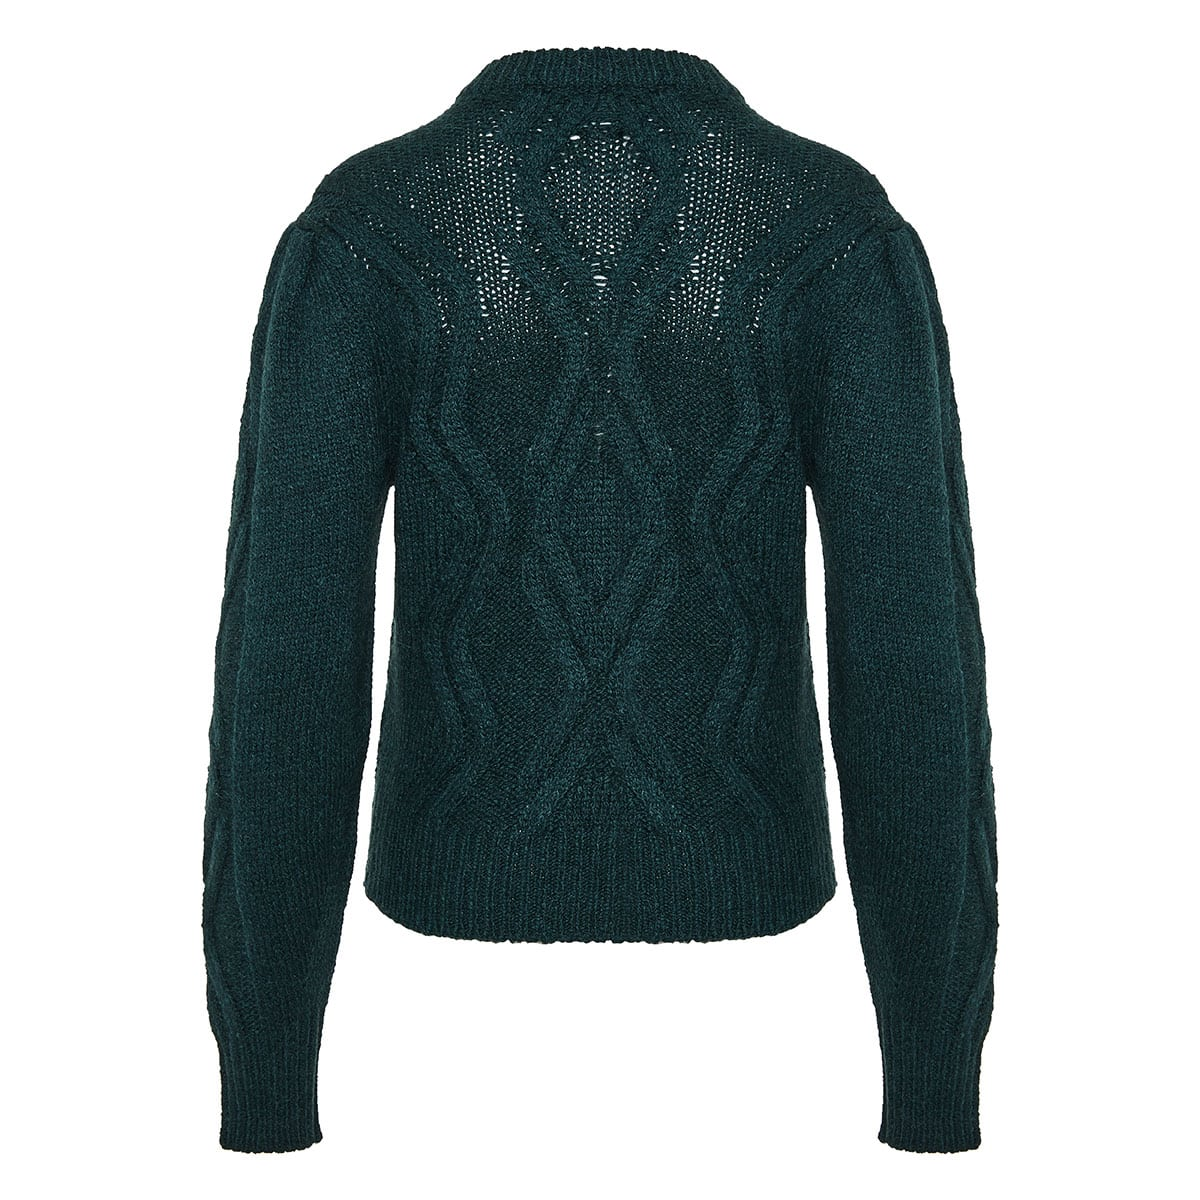 Devlyn cable-knitted sweater